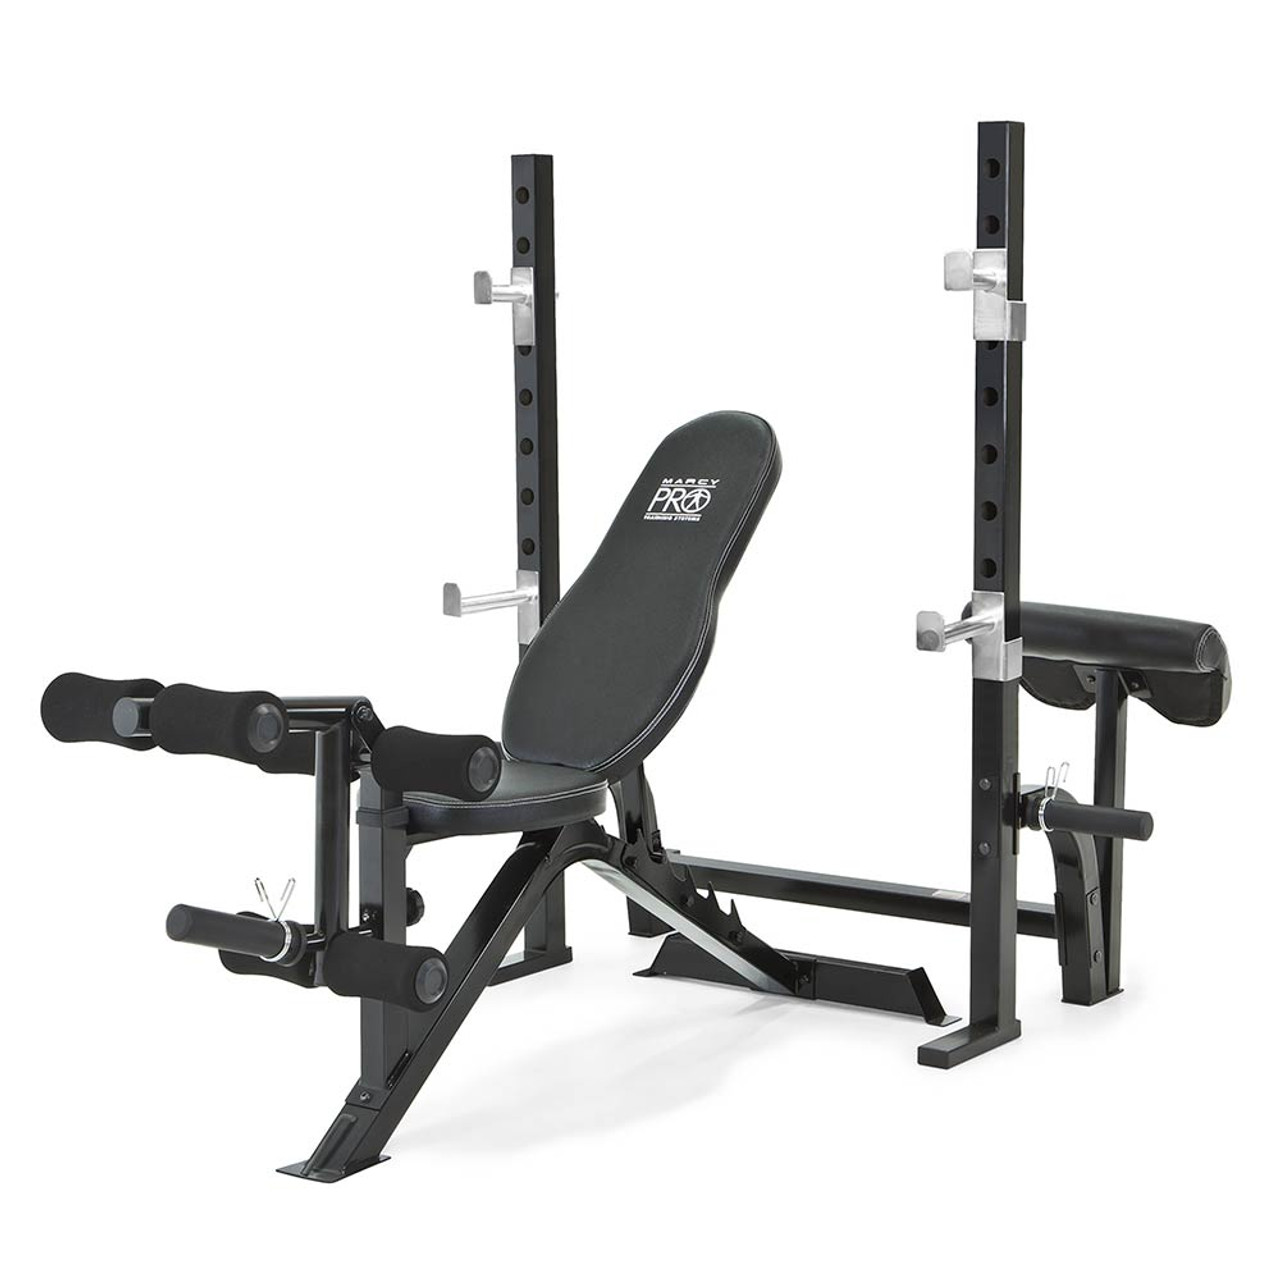 bench gloucestershire p pro weight and fitness gumtree in weights gloucester sets